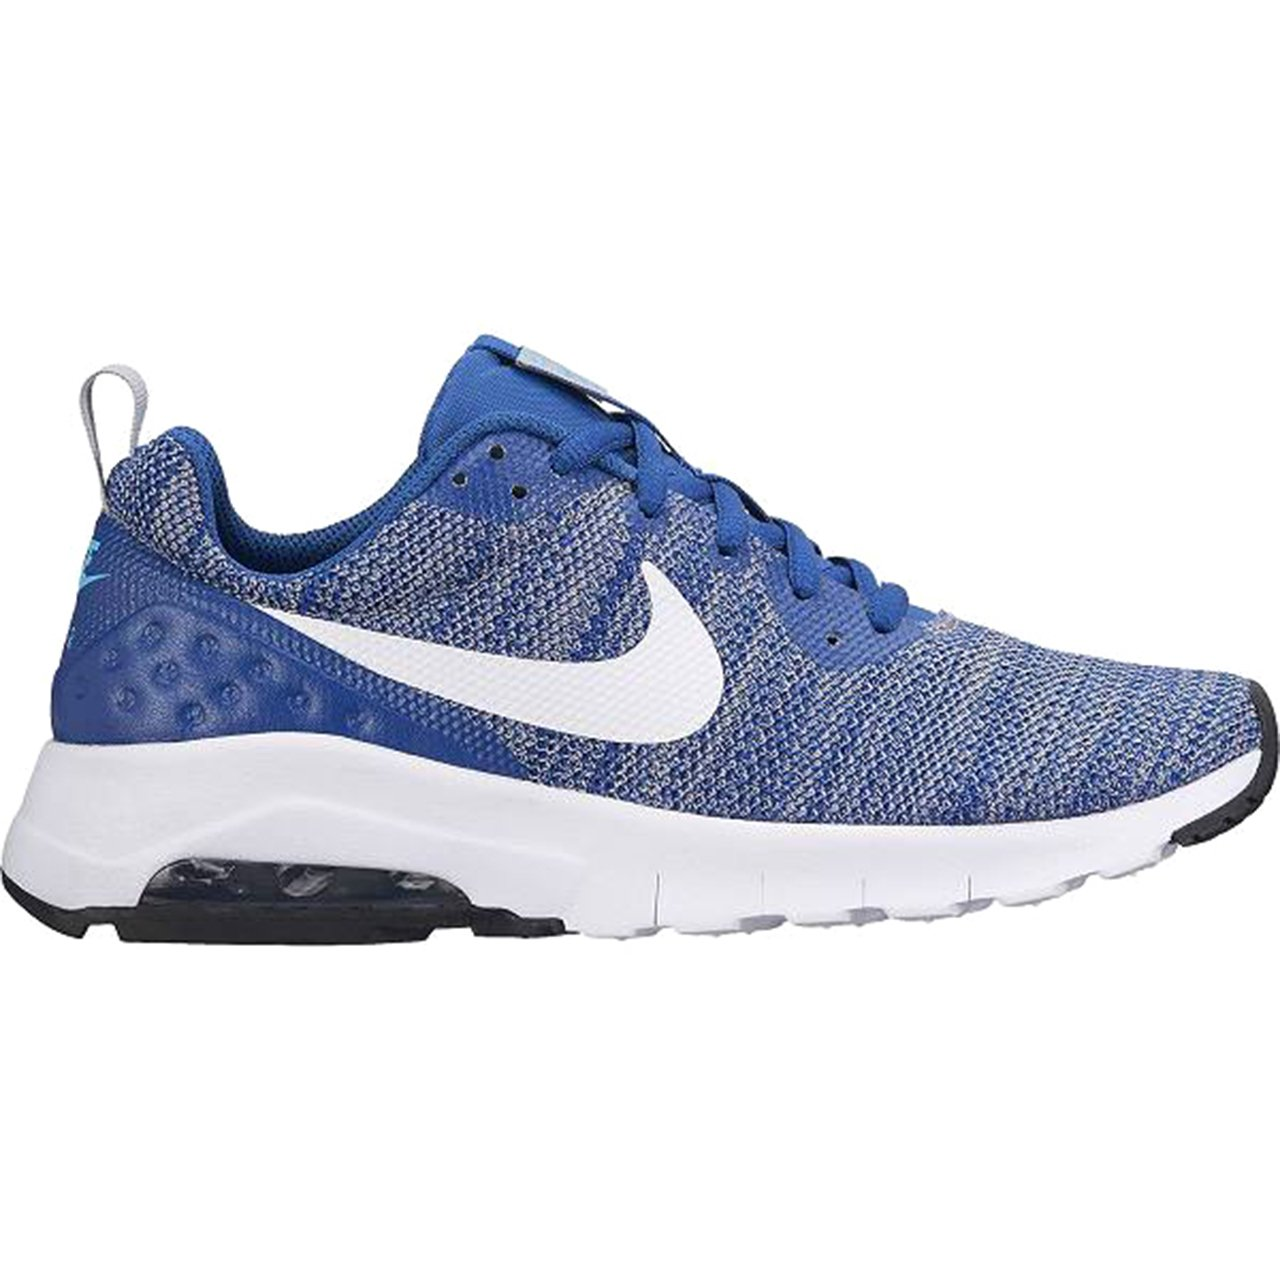 various styles offer discounts latest fashion Amazon.com | Nike Air Max Motion LW (GS) 917650 402 Gym Blue ...